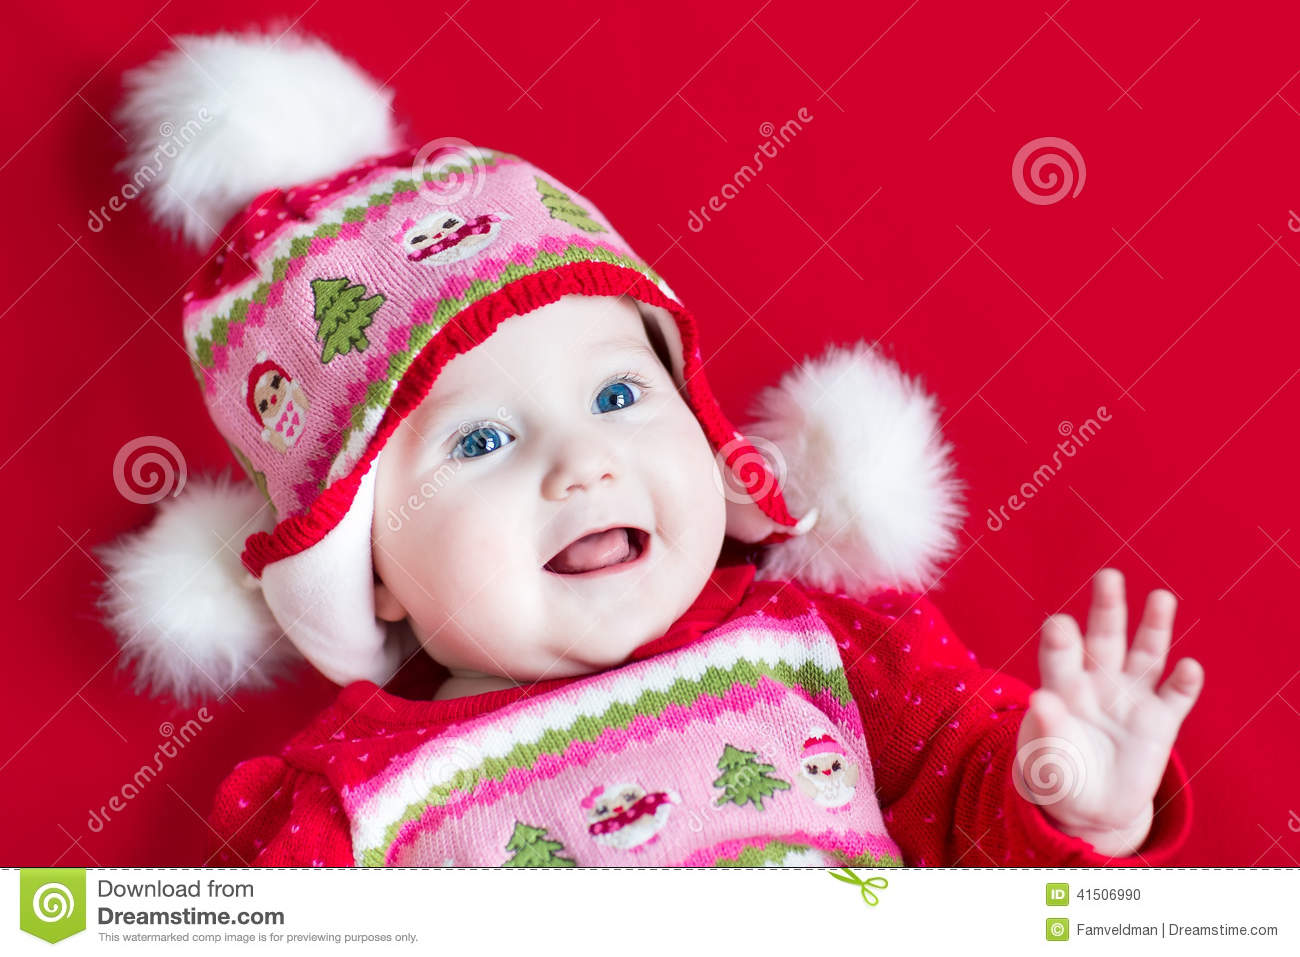 e703513b2 Happy Laughing Baby Girl In Christmas Knitted Hat Stock Photo ...